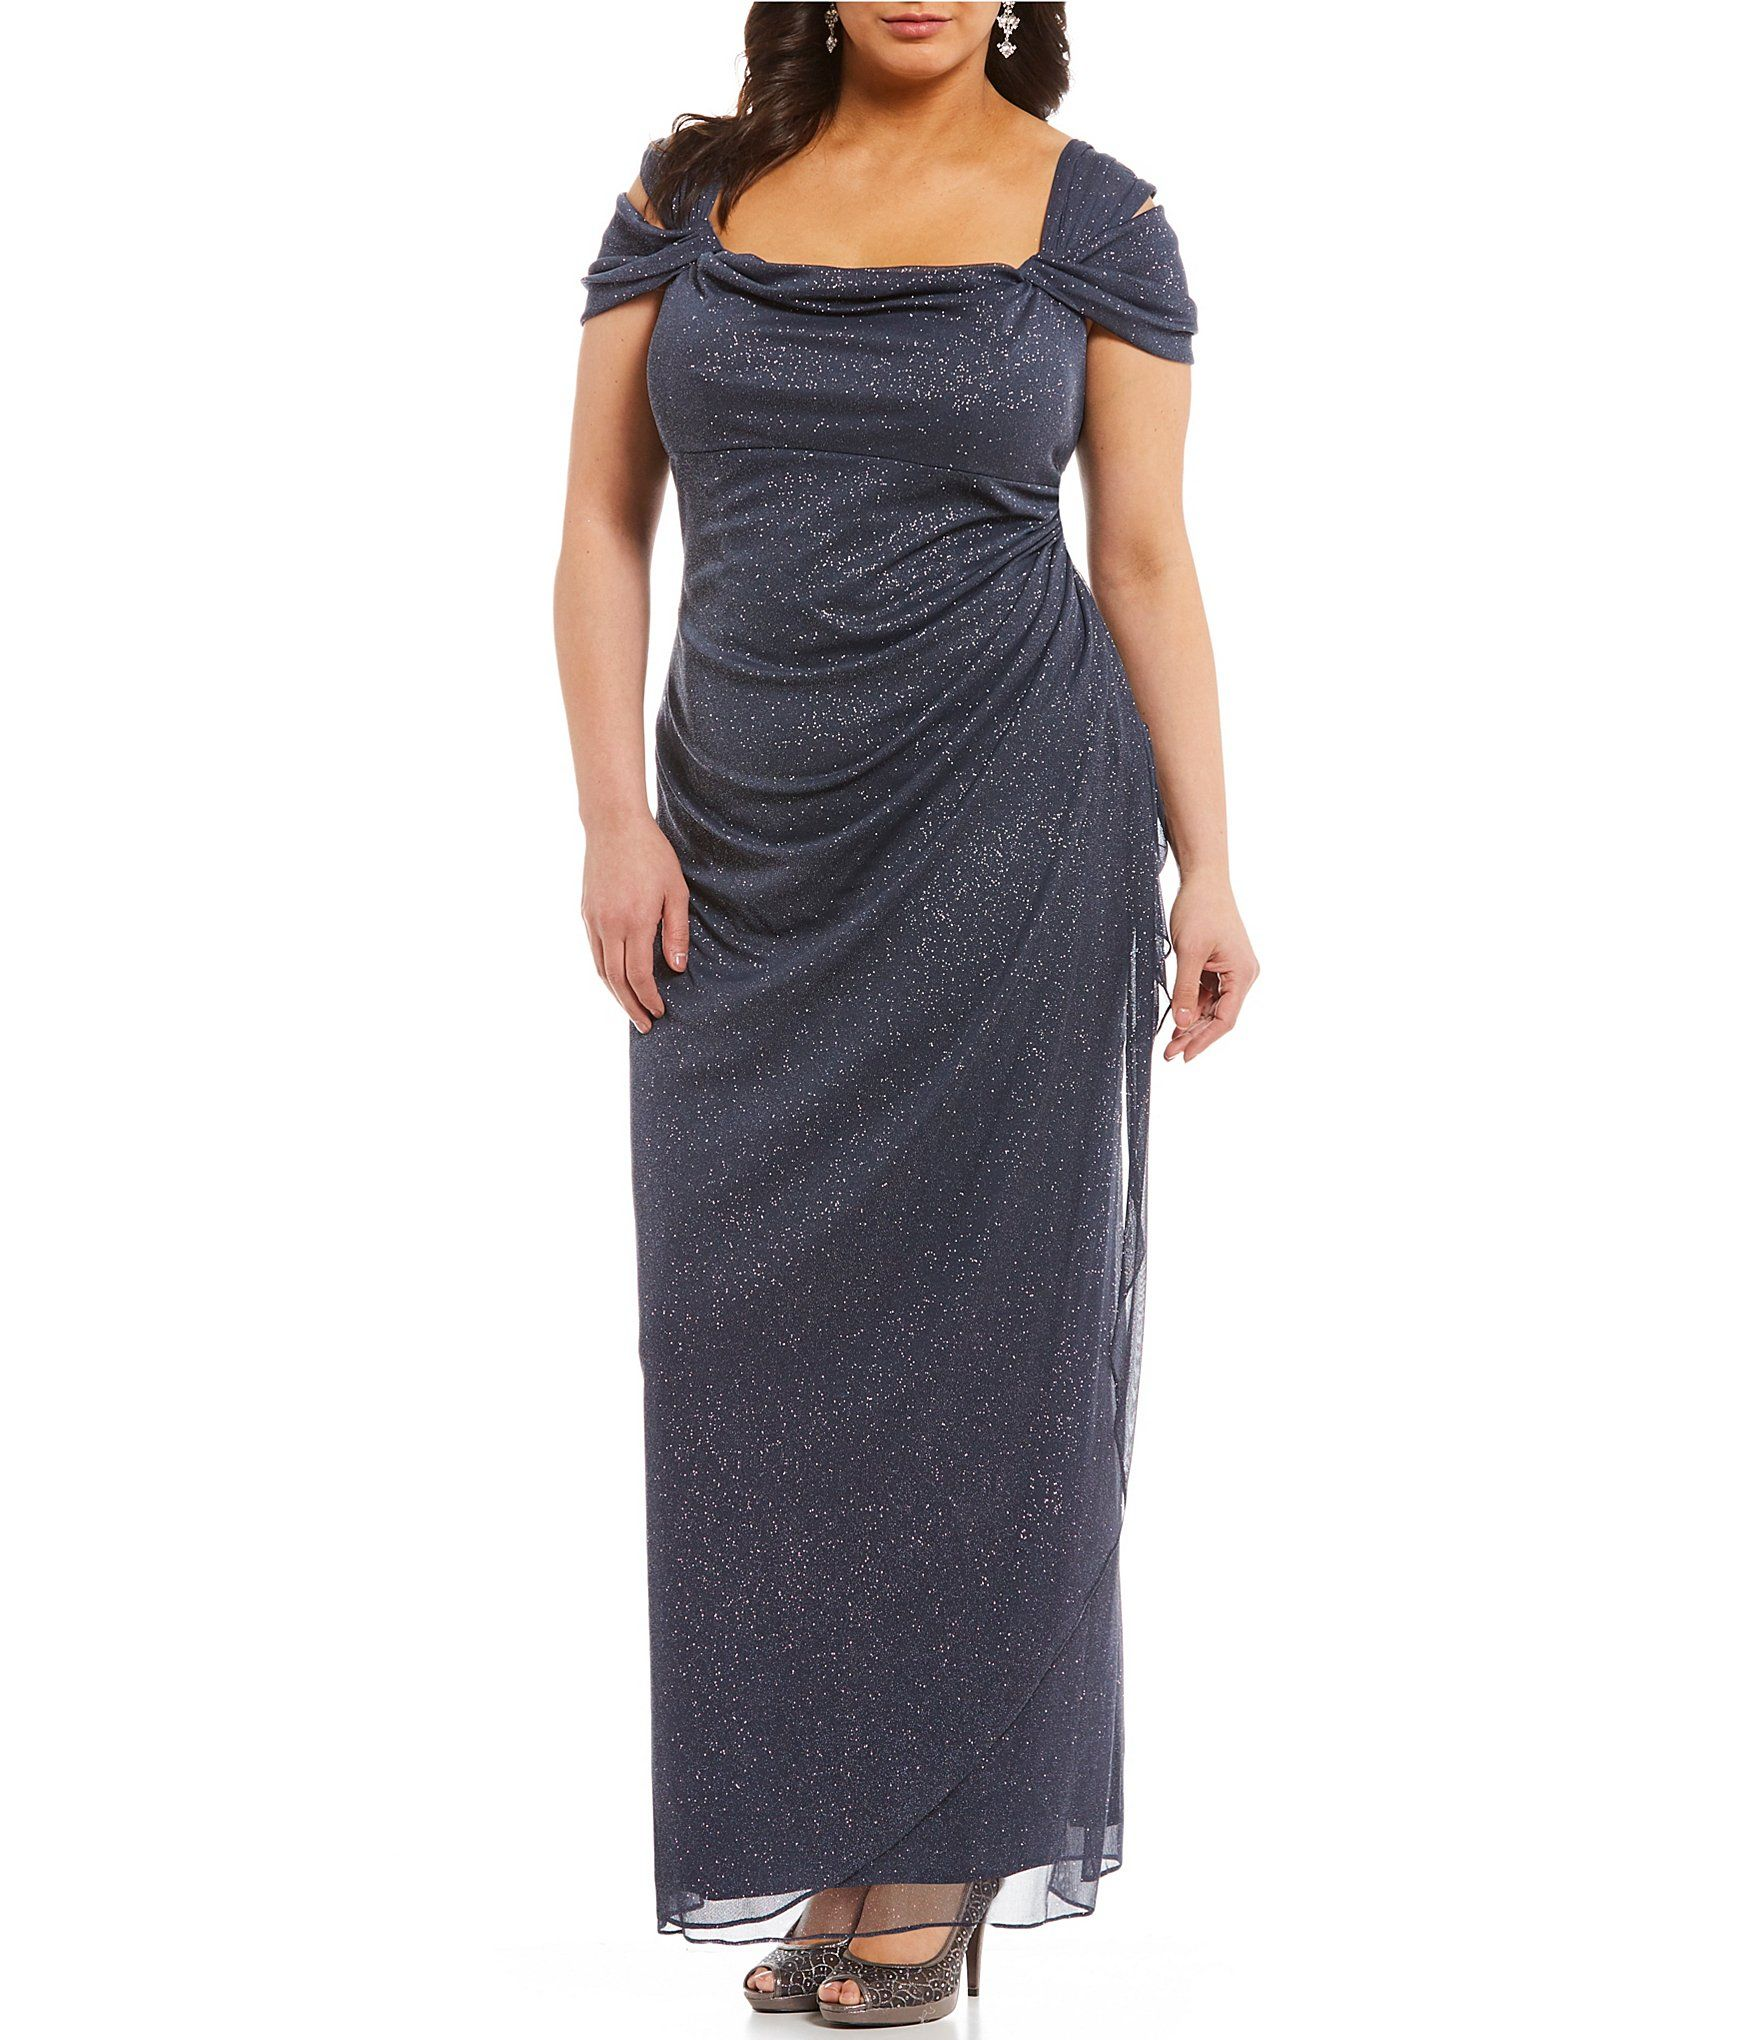 Plus size wedding guest dresses with sleeves  Alex Evenings Plus Cold Shoulder Glitter Mesh Gown  Winter